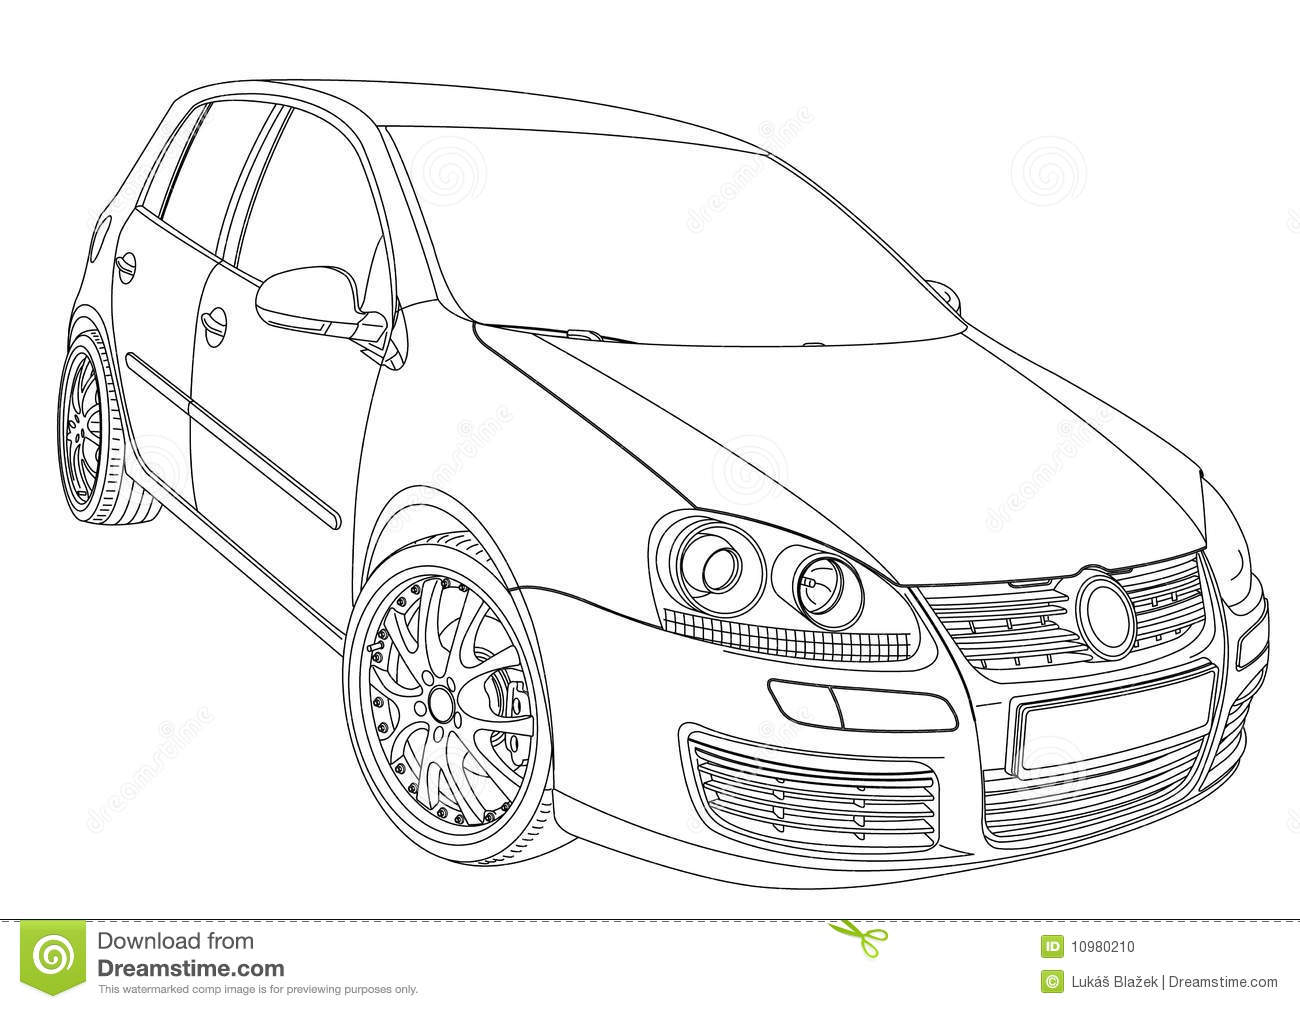 Volkswagen Golf 5 stock vector. Illustration of limusine